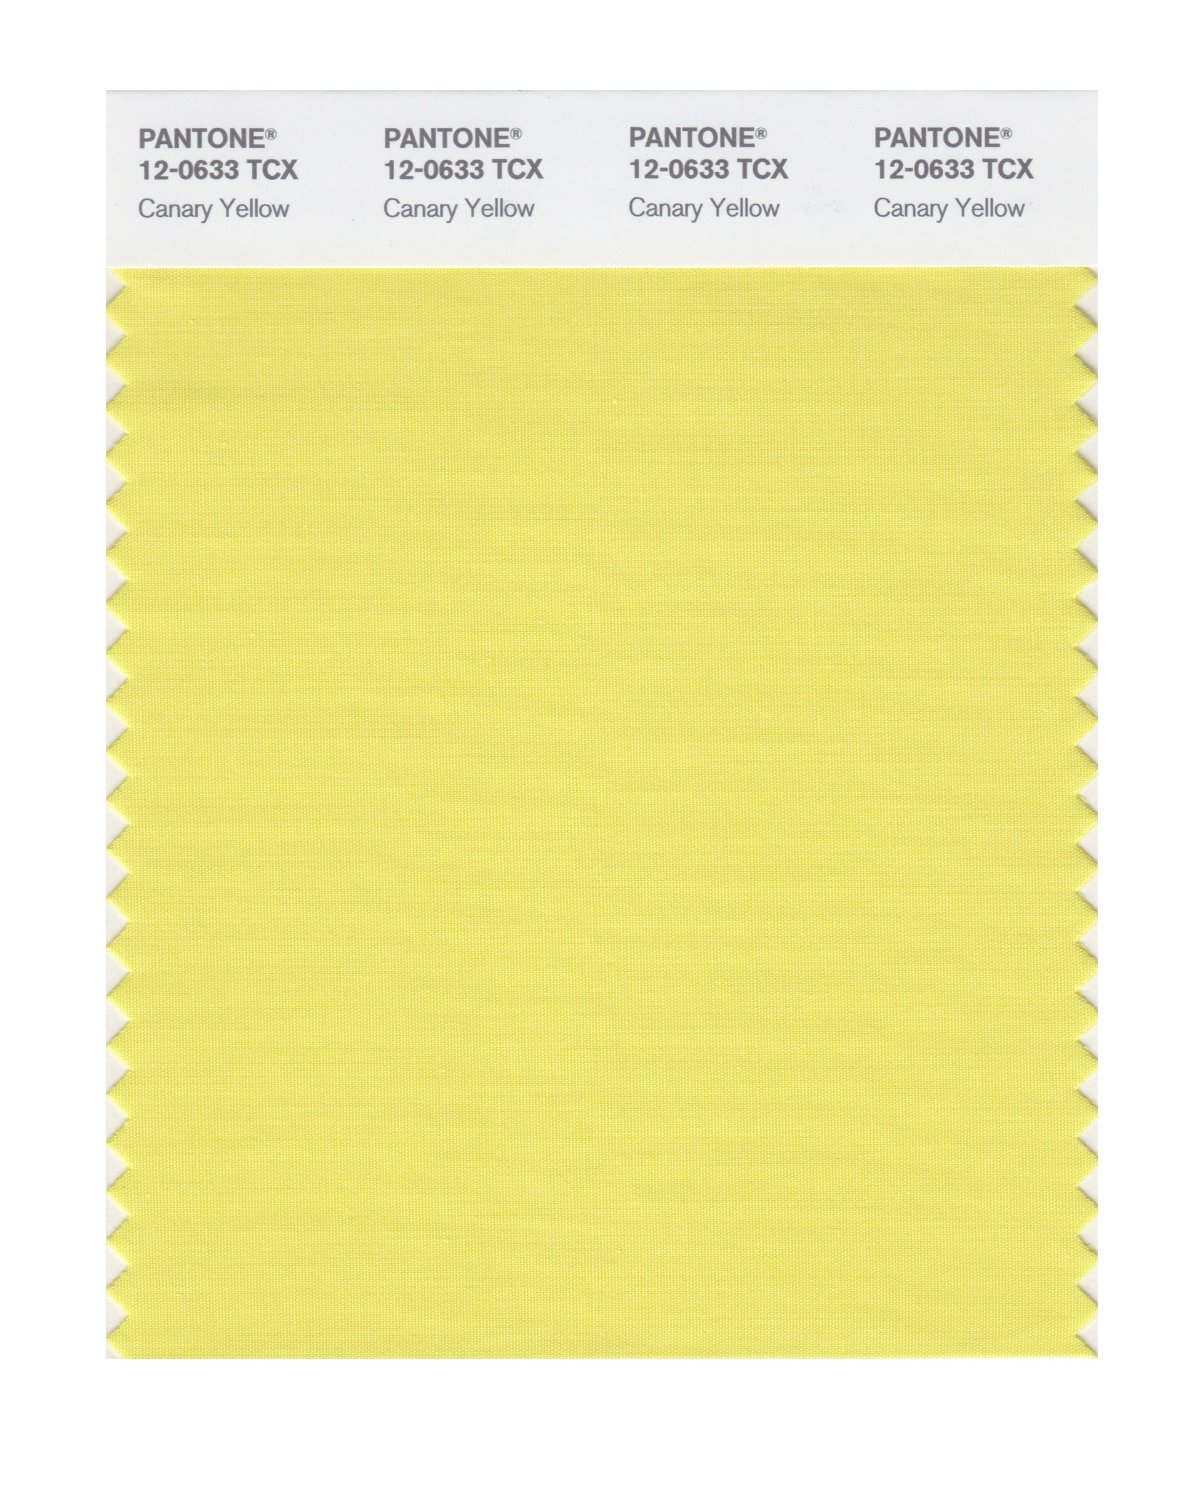 Pantone Smart Swatch 12-0633 Canary Yellow